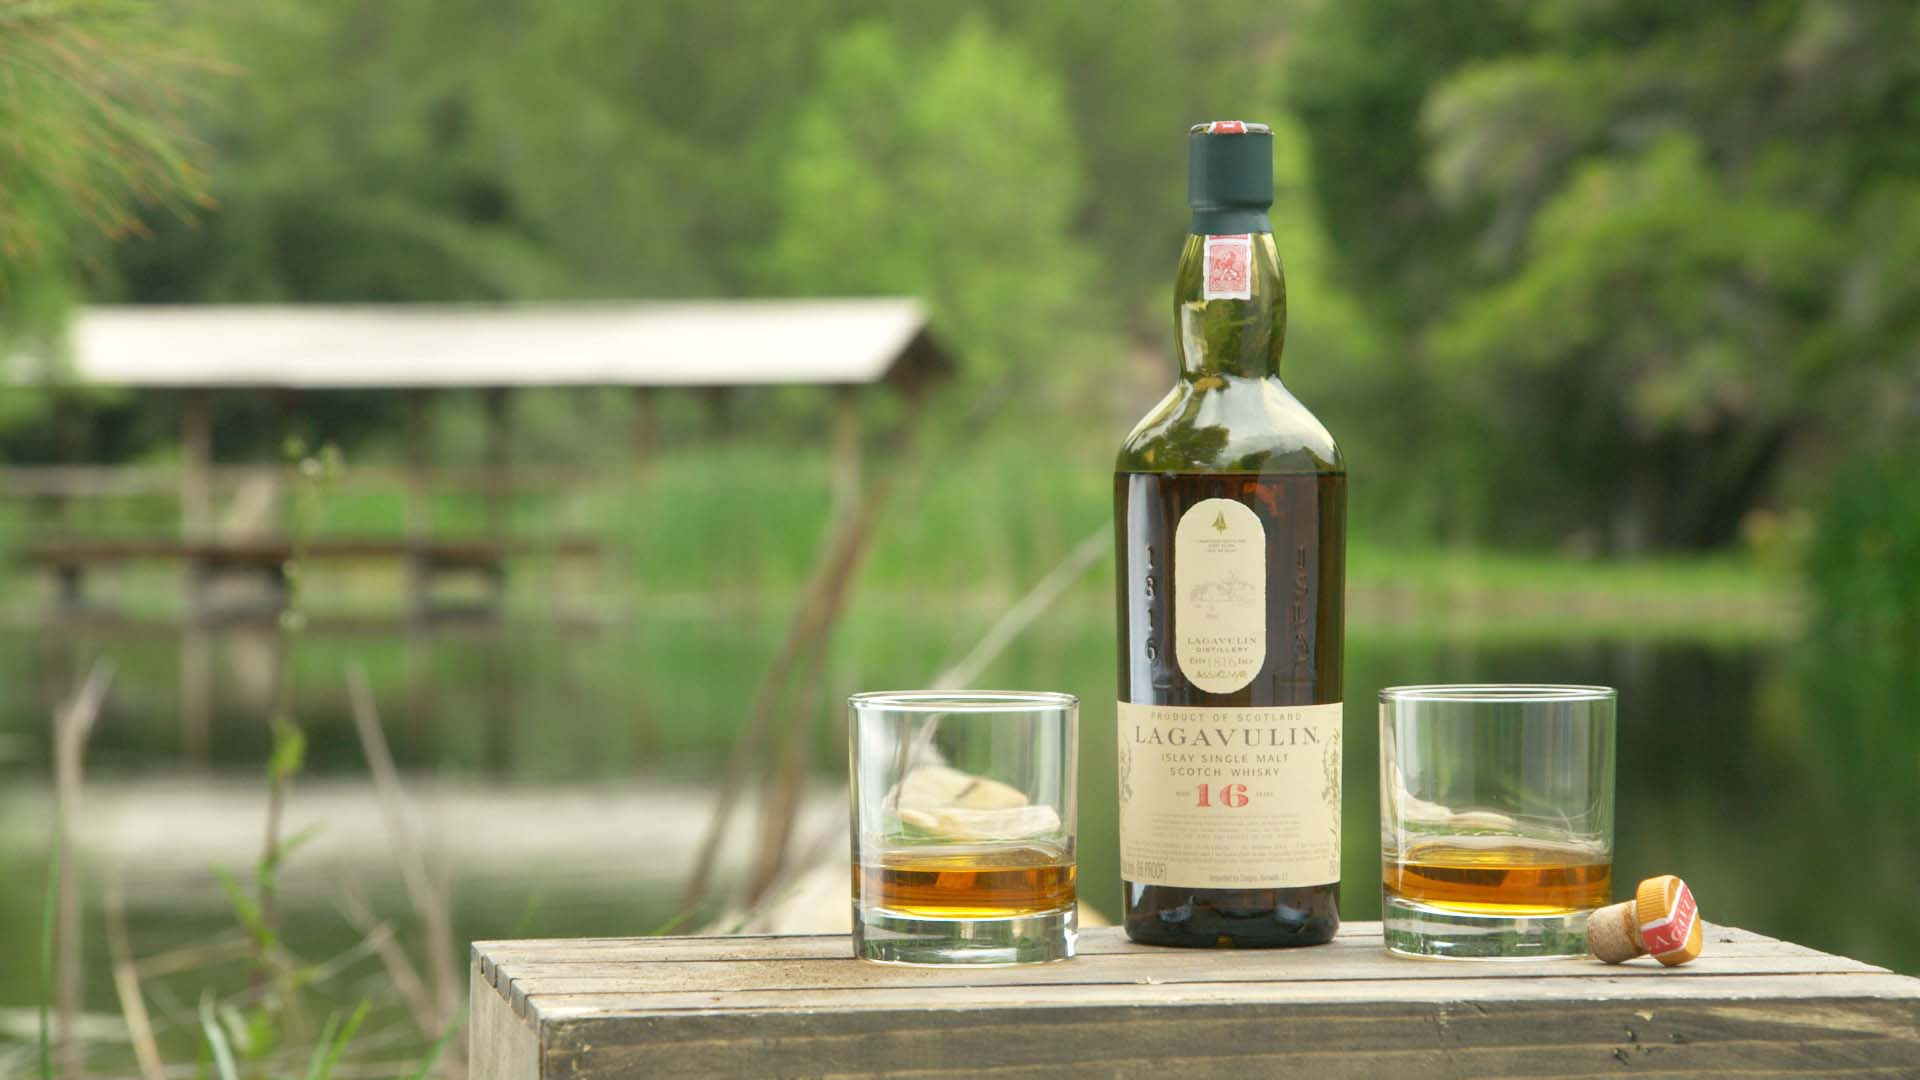 Lagavulin™ Single Malt Scotch Whisky Releases Father's Day Edition of My Tales of Whisky Series